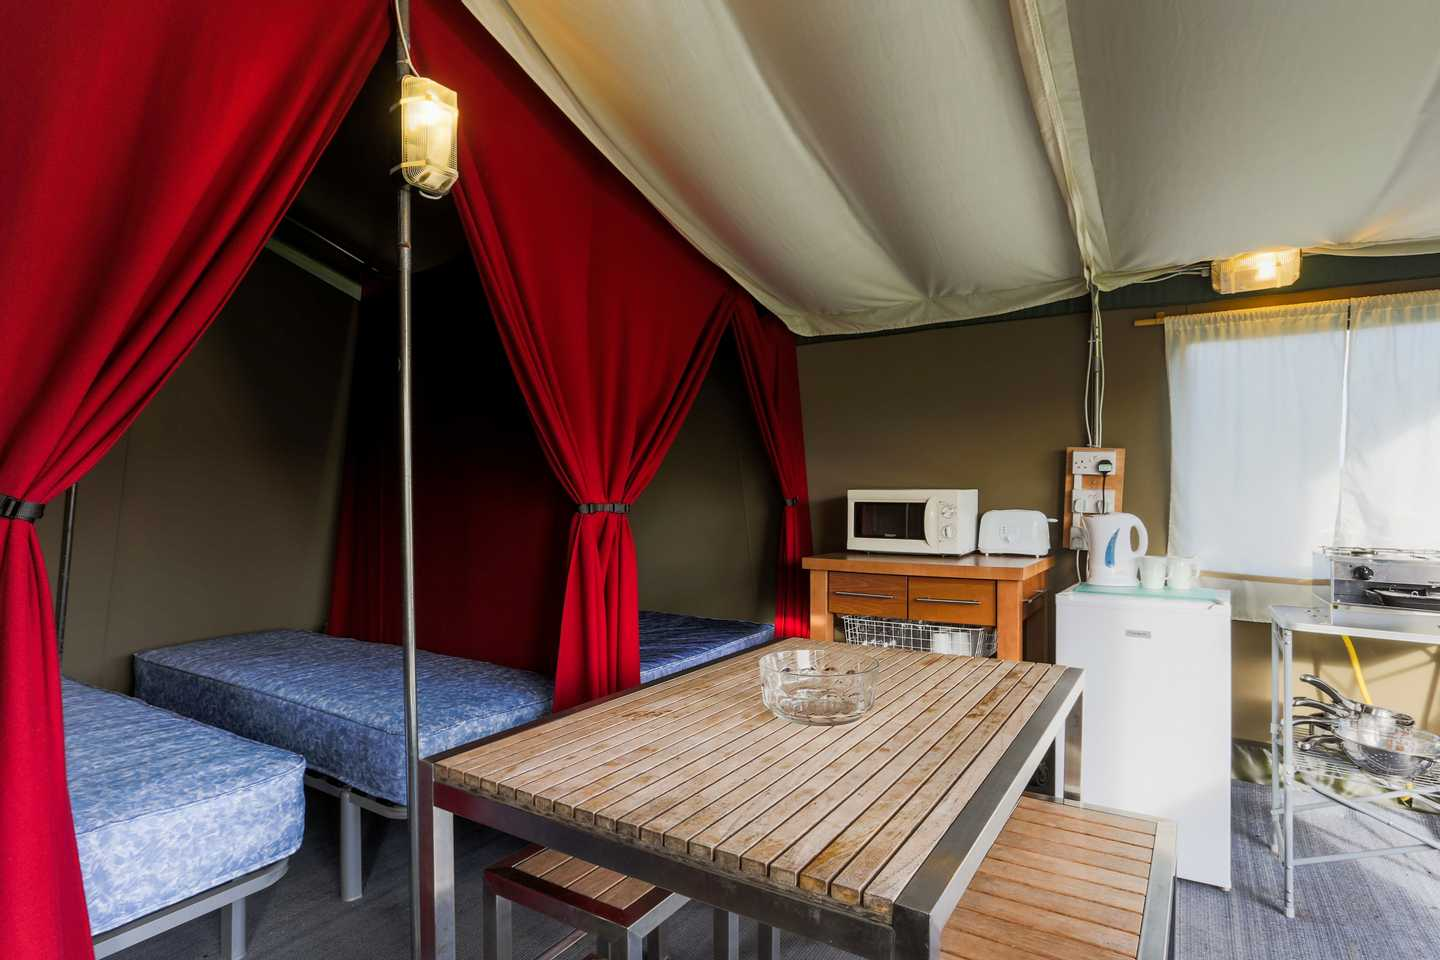 The sleeping area and dining area of a Super Tent at Perran Sands